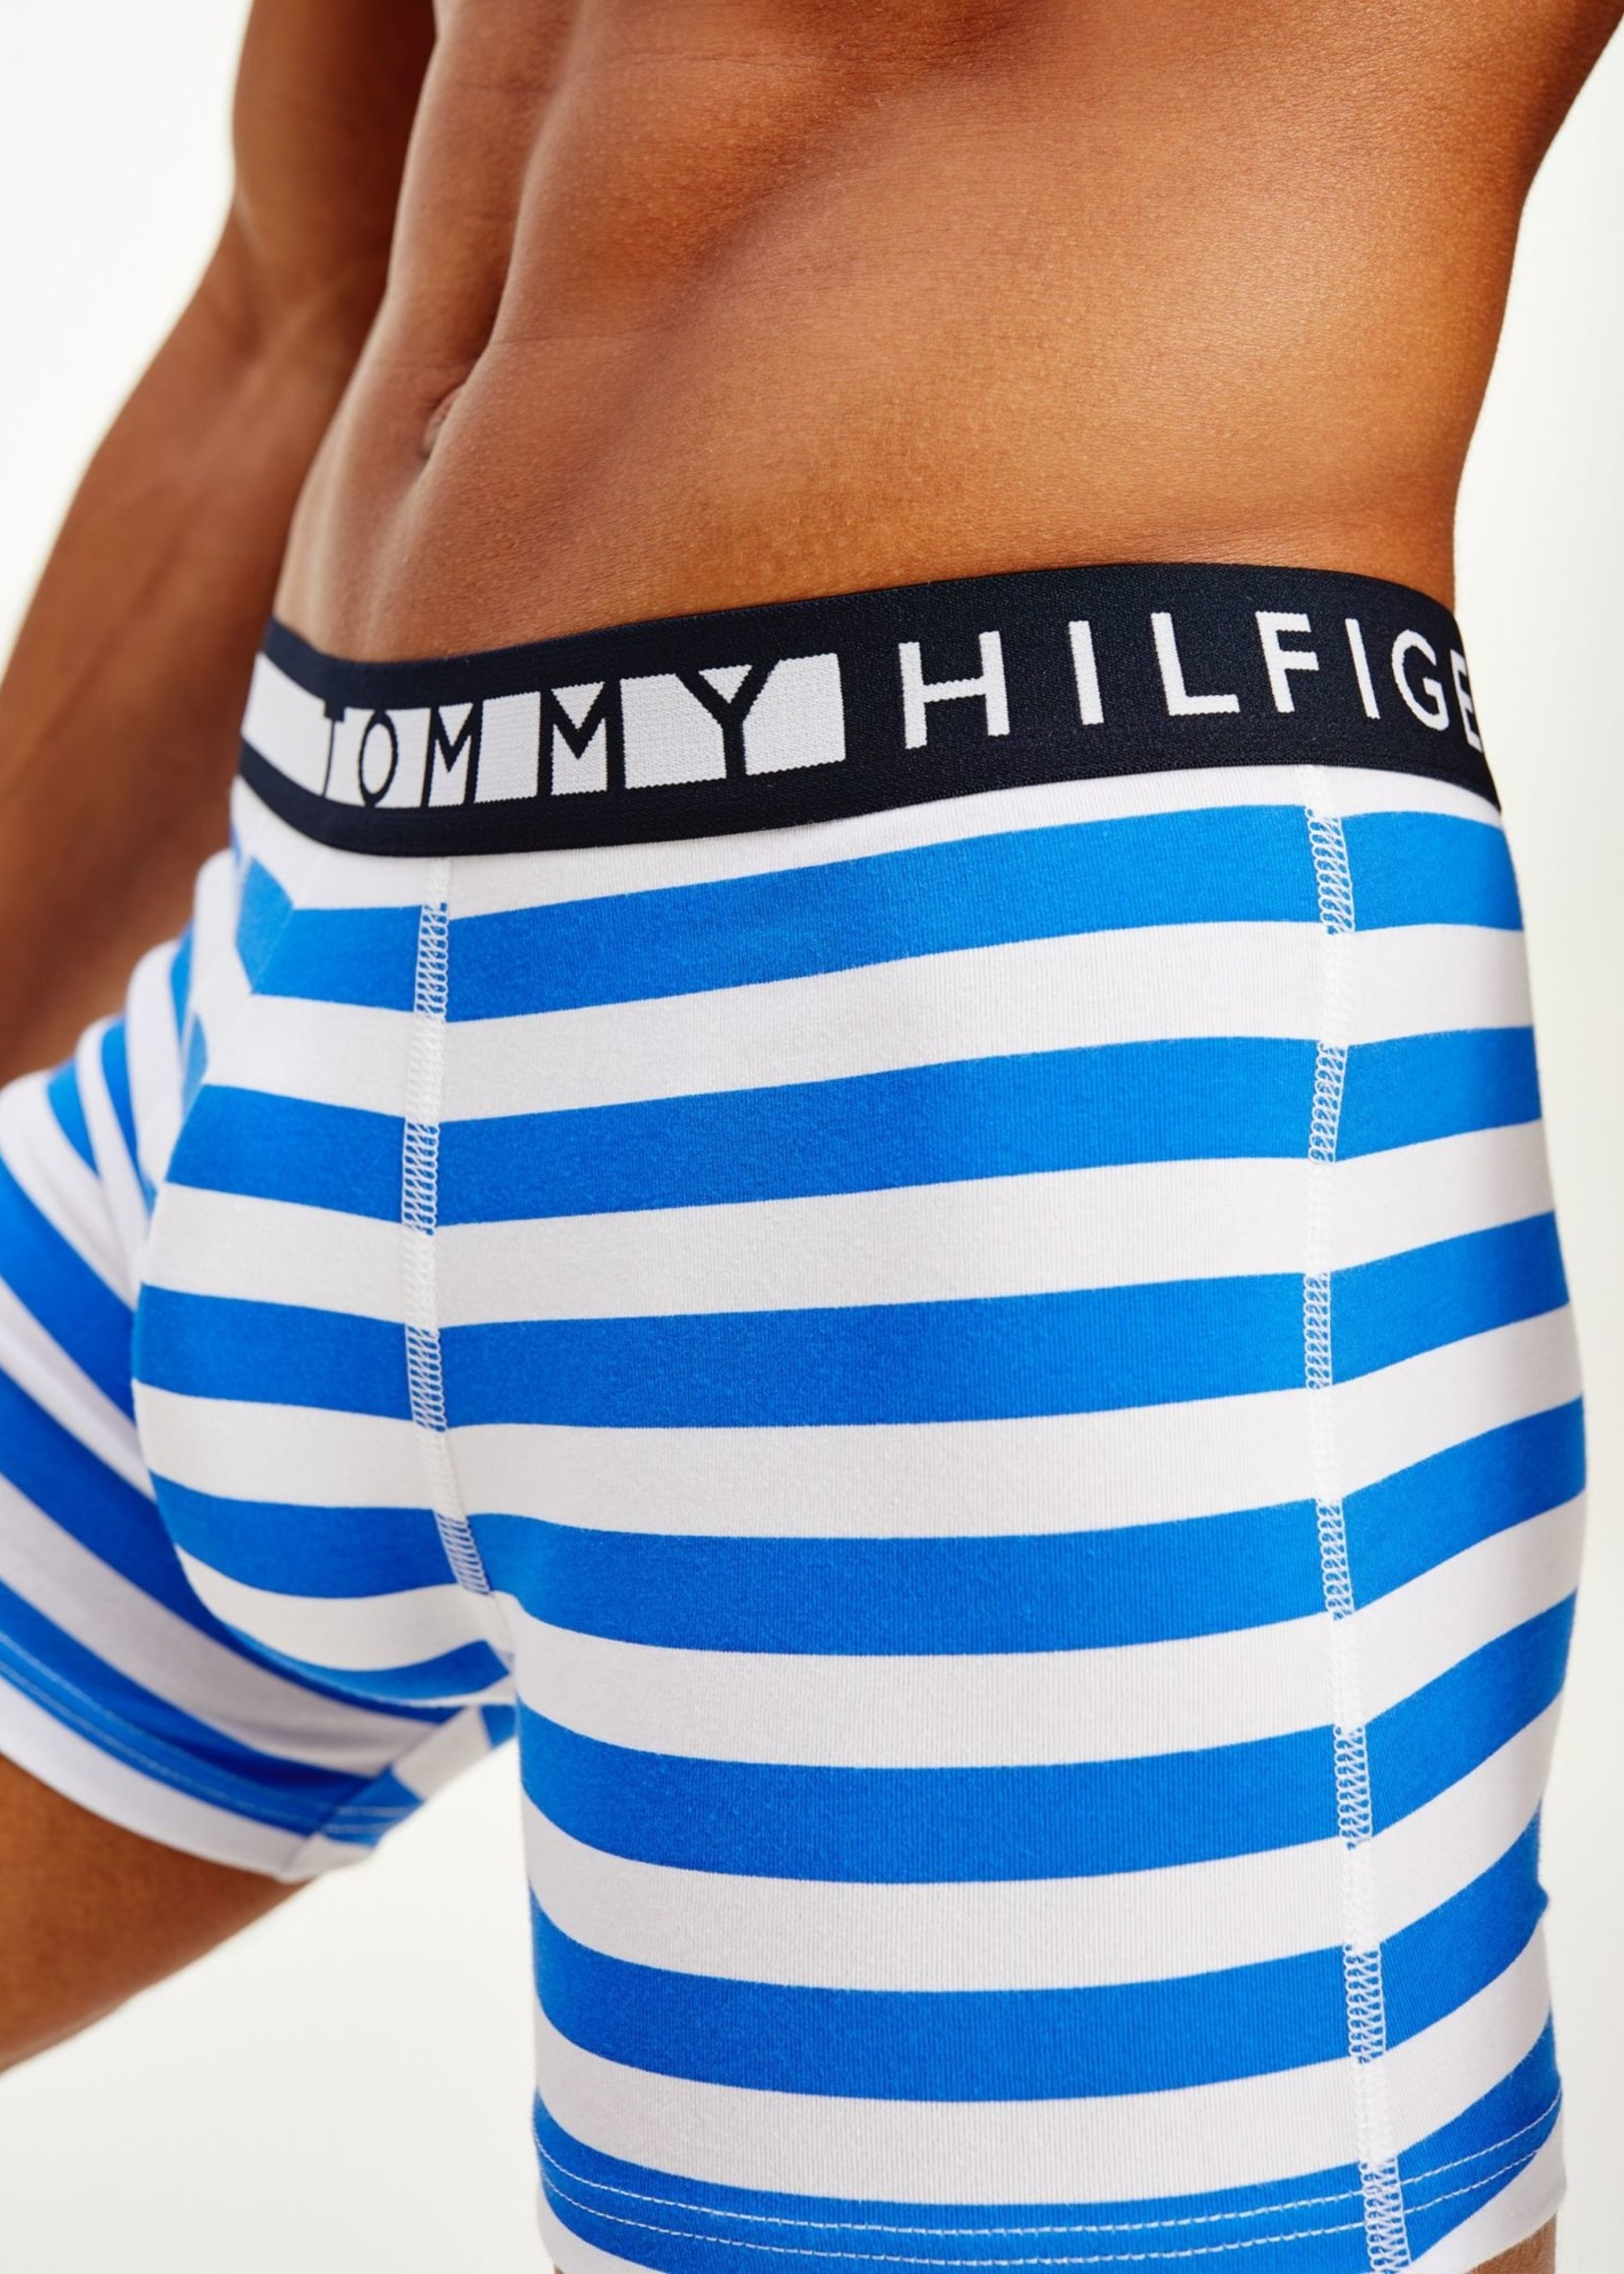 Tommy Hilfiger 3-Pack Organic Cotton Trunks | Desert Sky/Prim Yellow/Hoop Stripe | Tommy Hilfiger